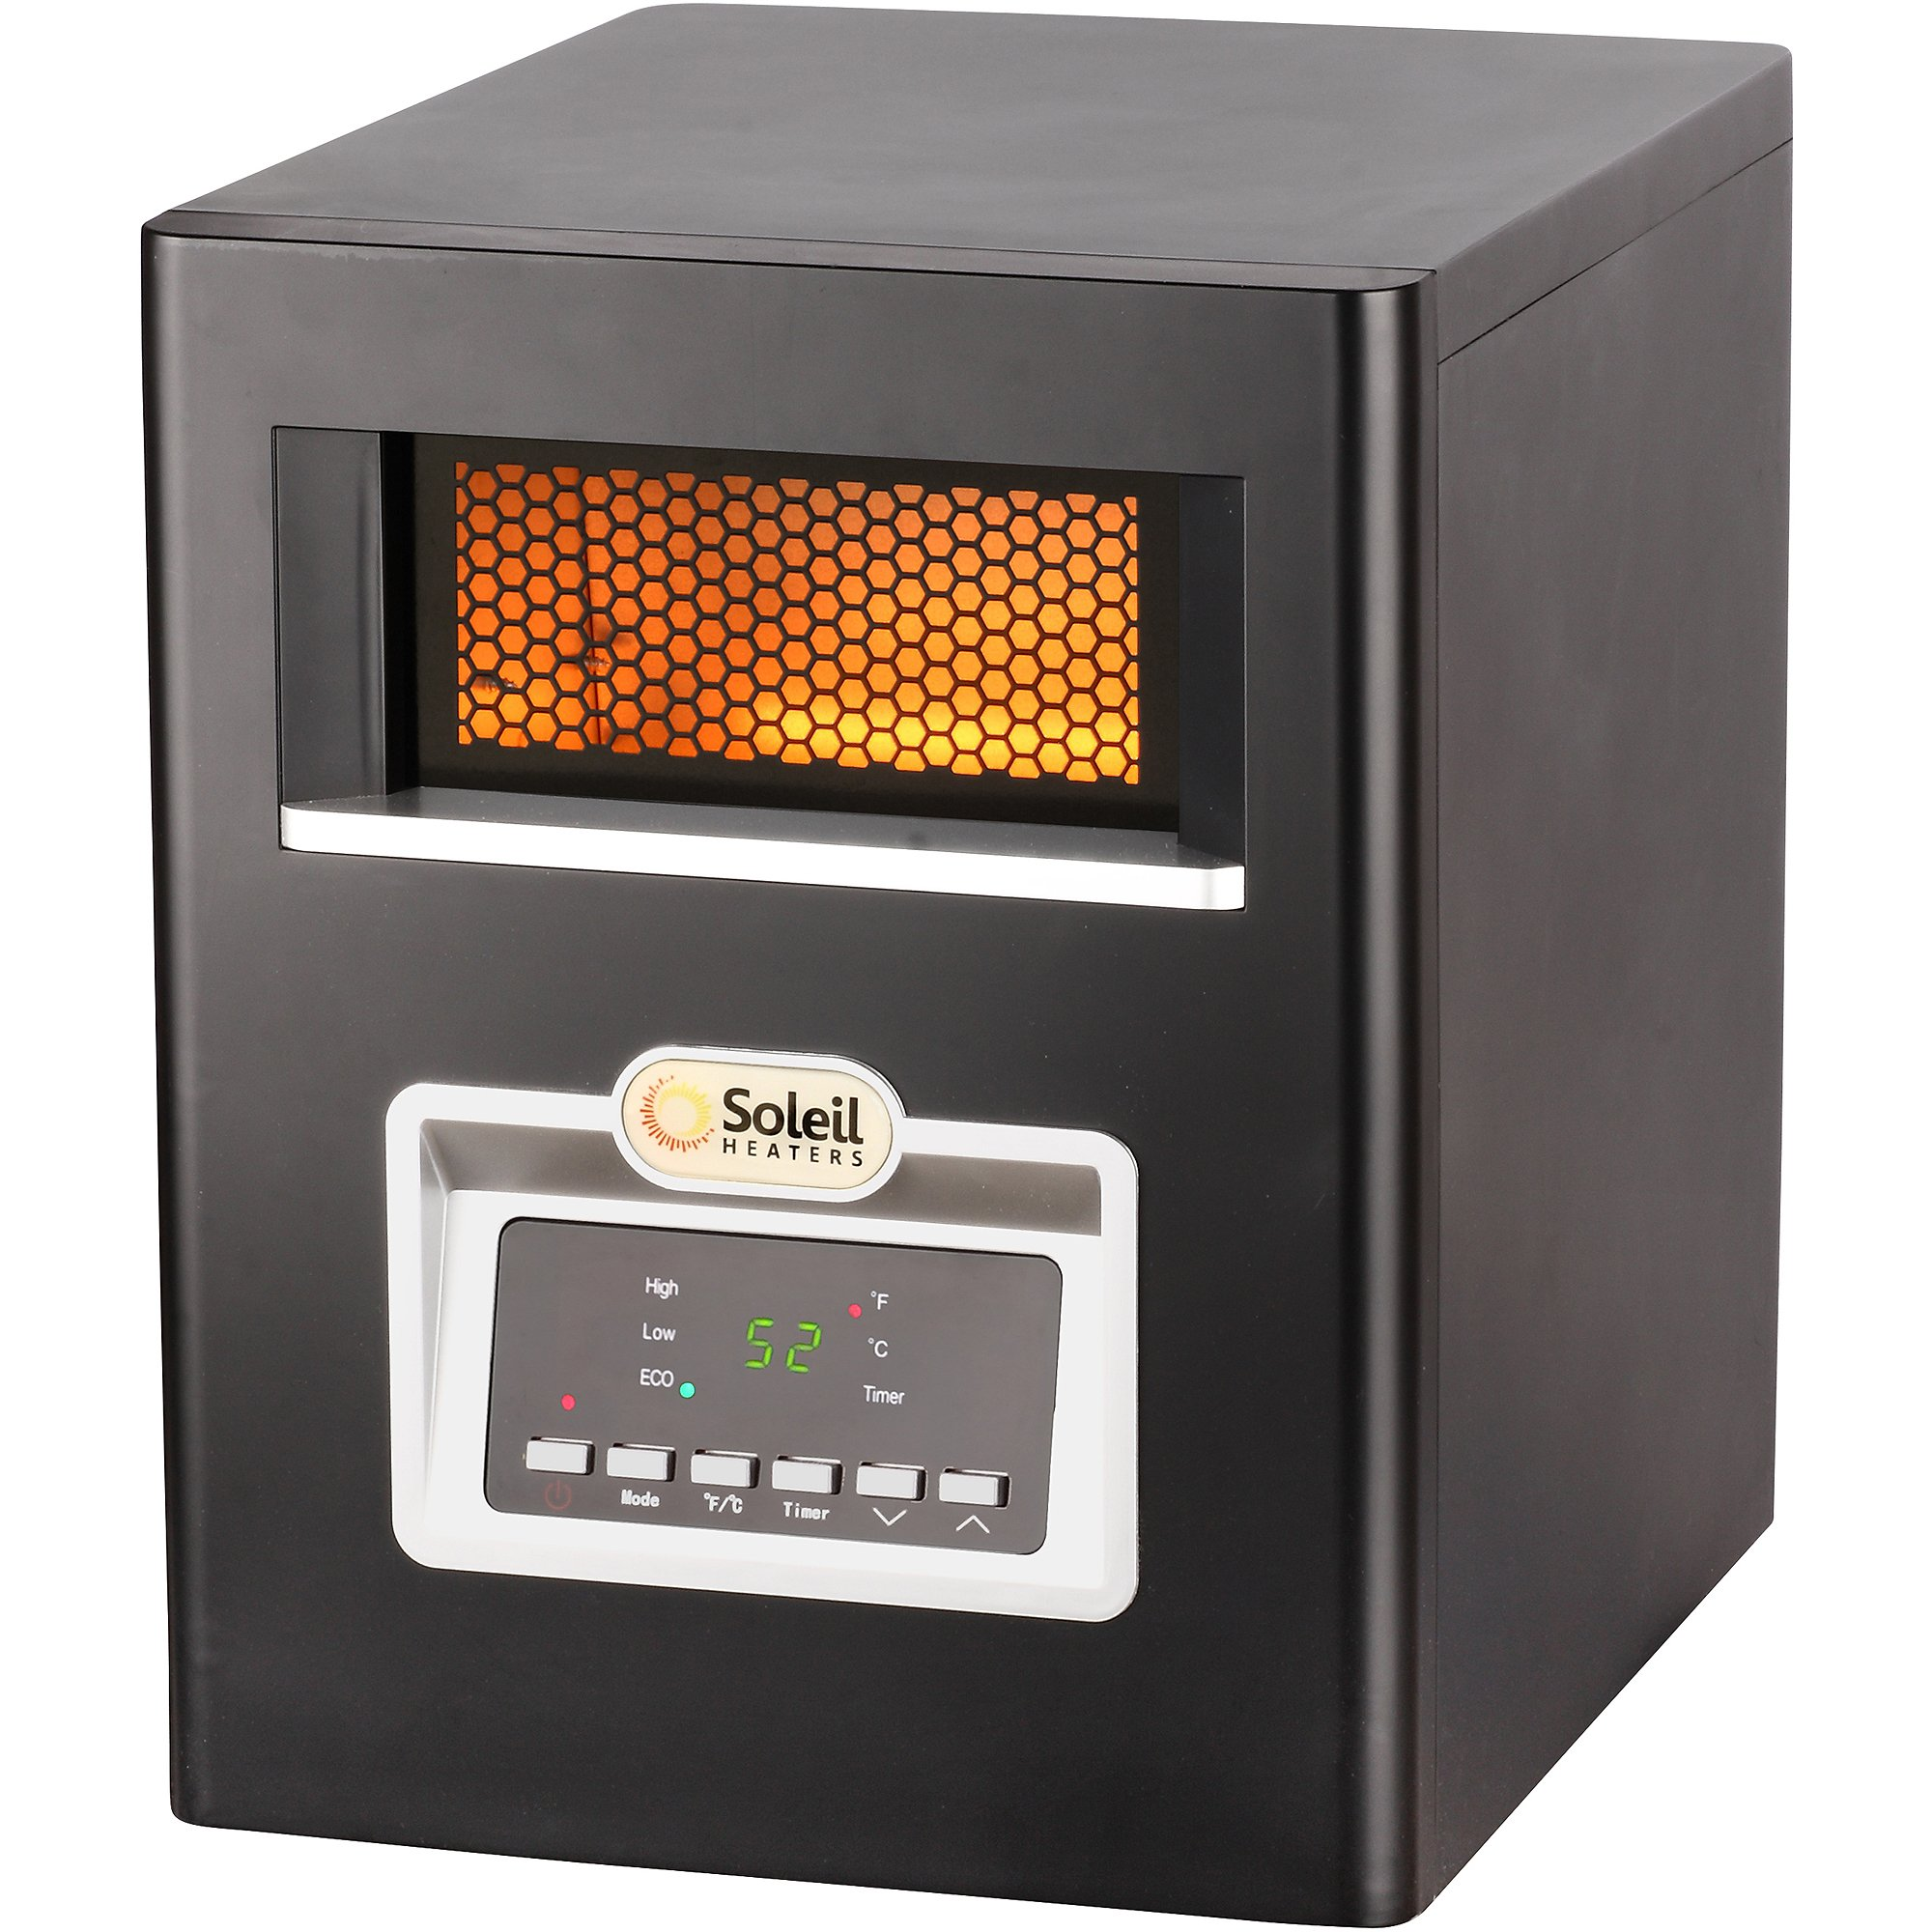 Soleil Electric Infrared Cabinet Space Heater with Remote Control, 1500W, PH-91F by Unknown